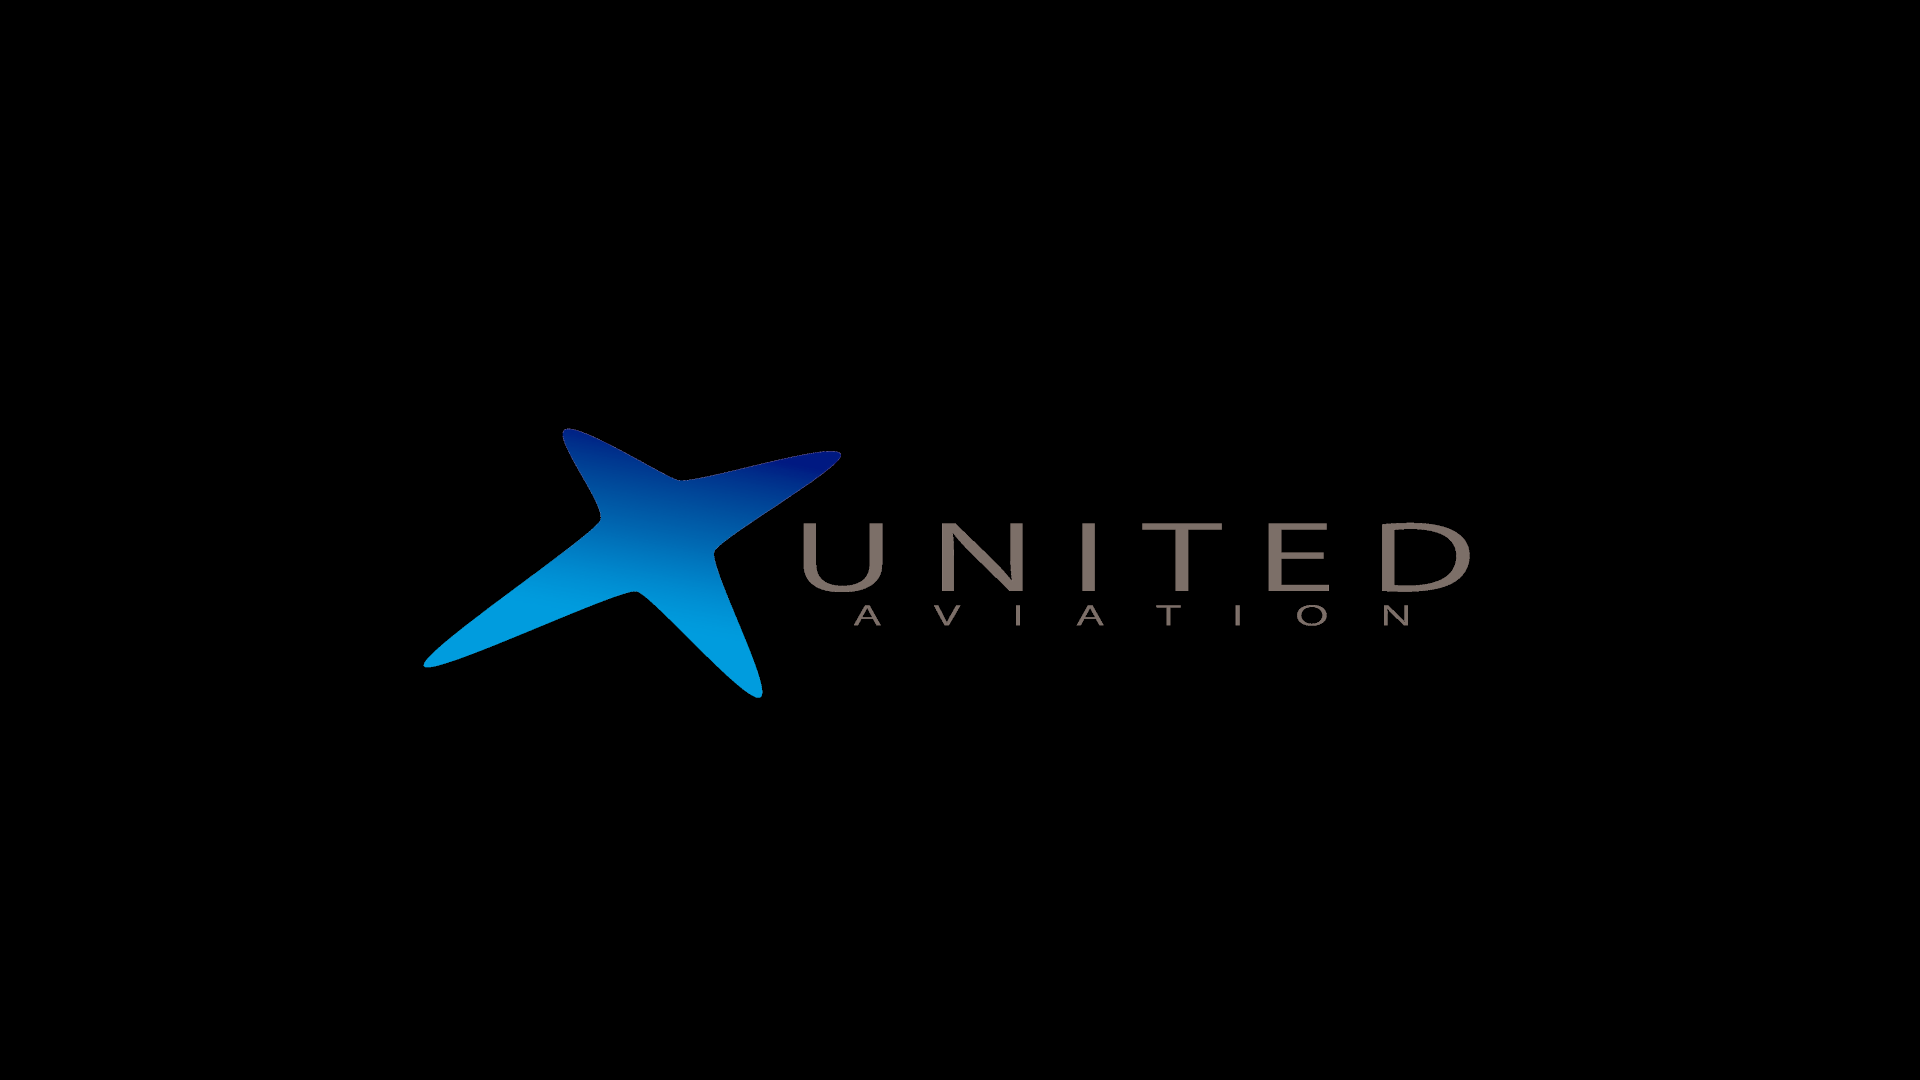 United Aviation